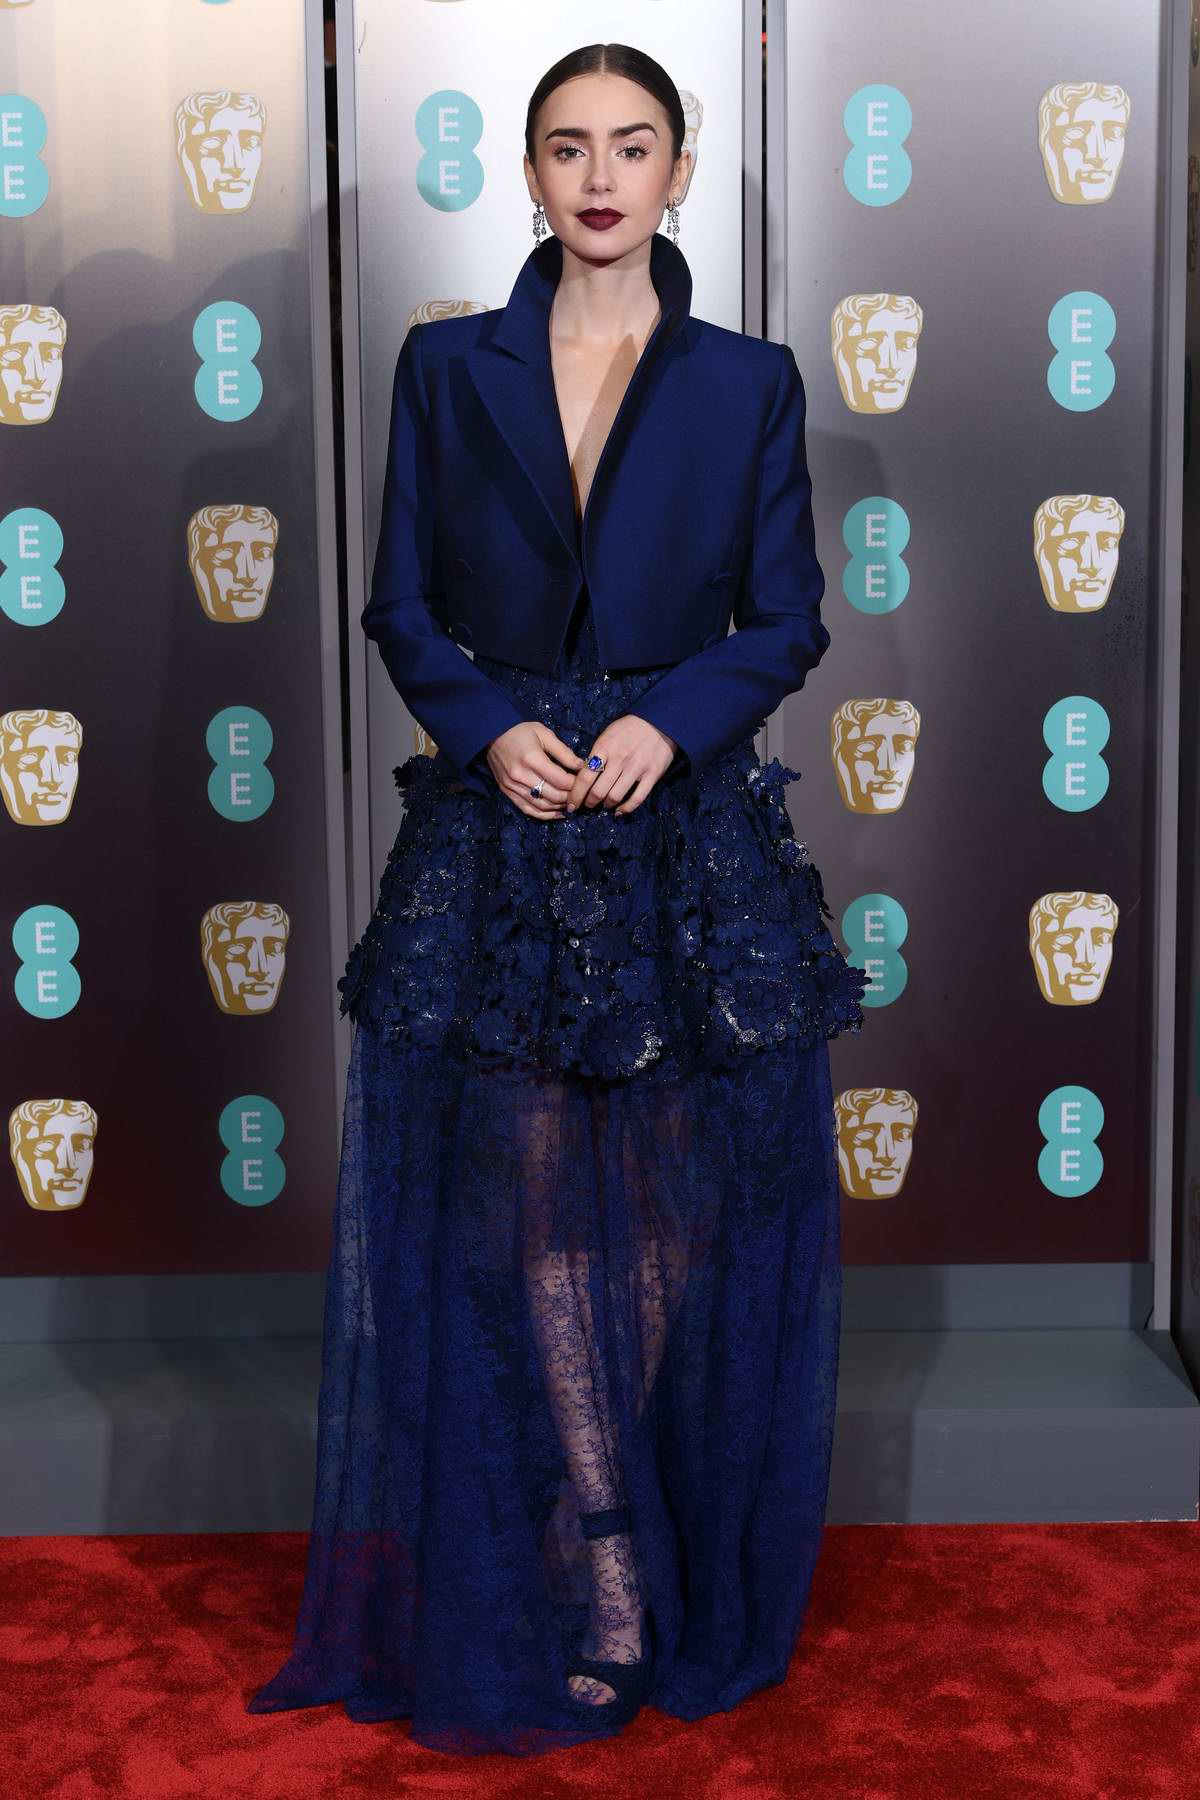 Lily Collins attends the 72nd EE British Academy Film Awards (BAFTA 2019) at Royal Albert Hall in London, UK